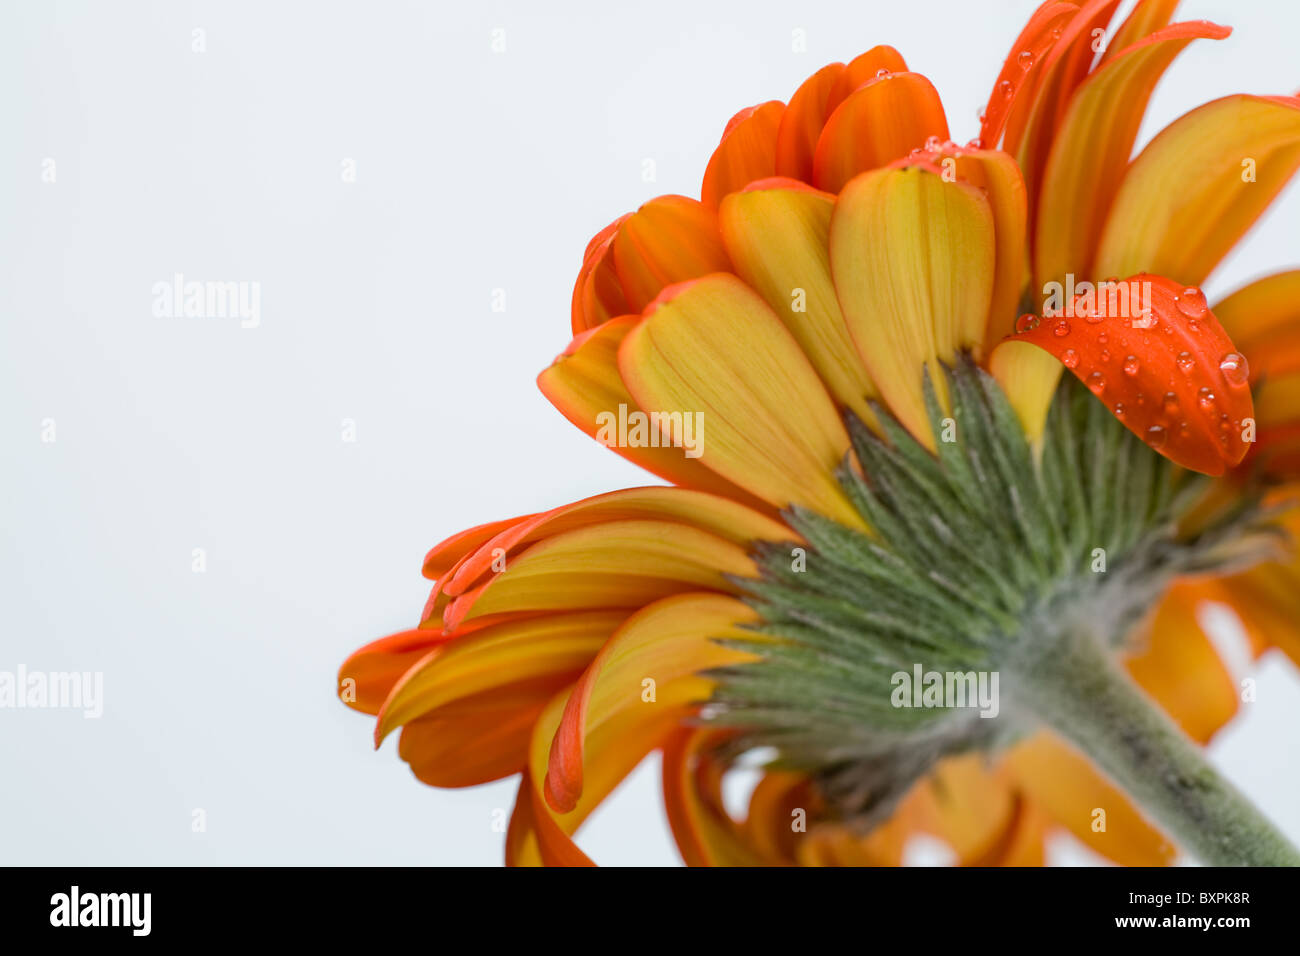 View of open bell of orange daisy from below isolated on white background - Stock Image